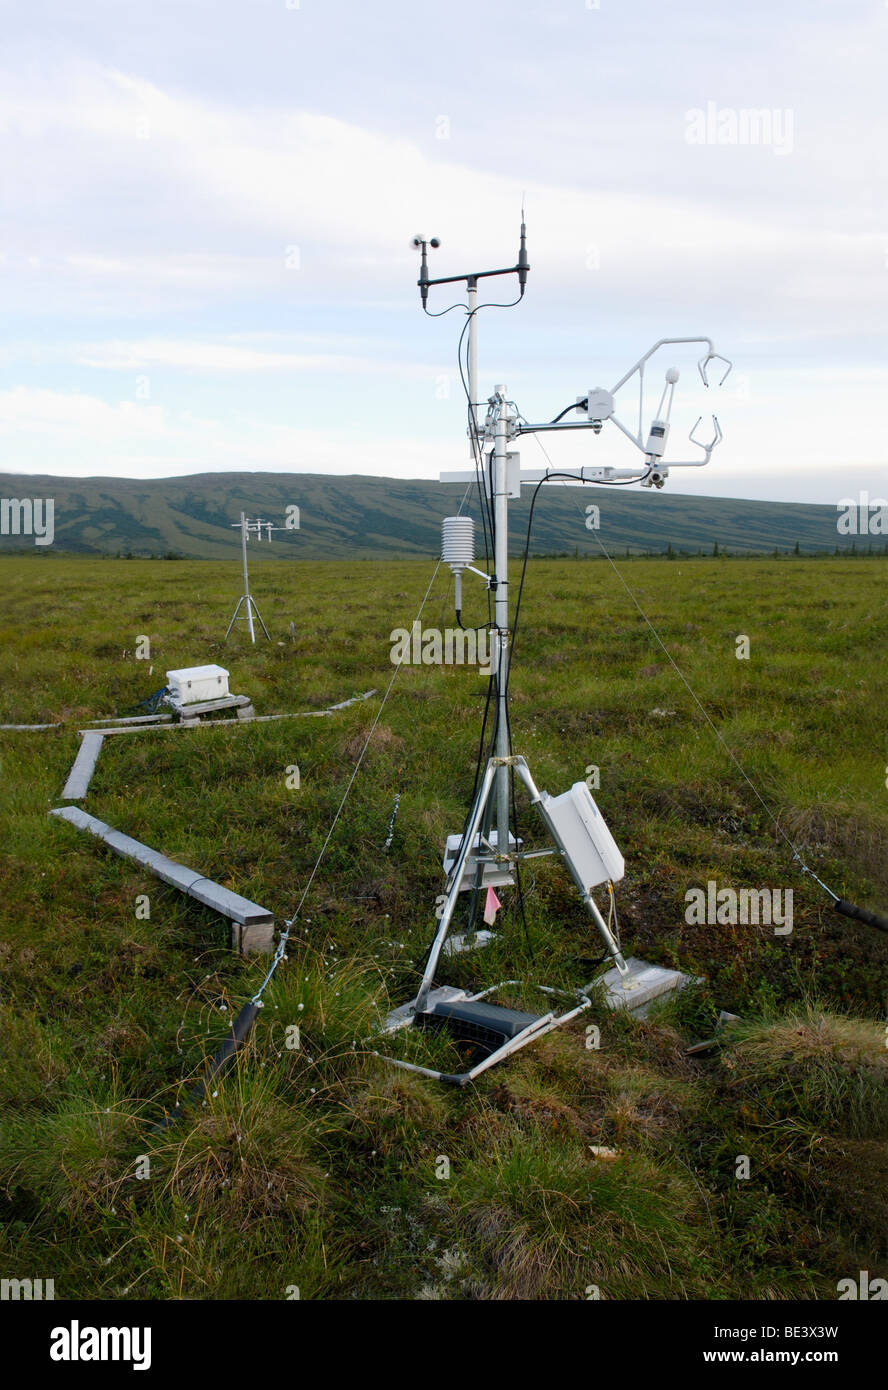 Climate change research - an eddy covariance system measures CO2 exchange between melting Alaskan permafrost and - Stock Image